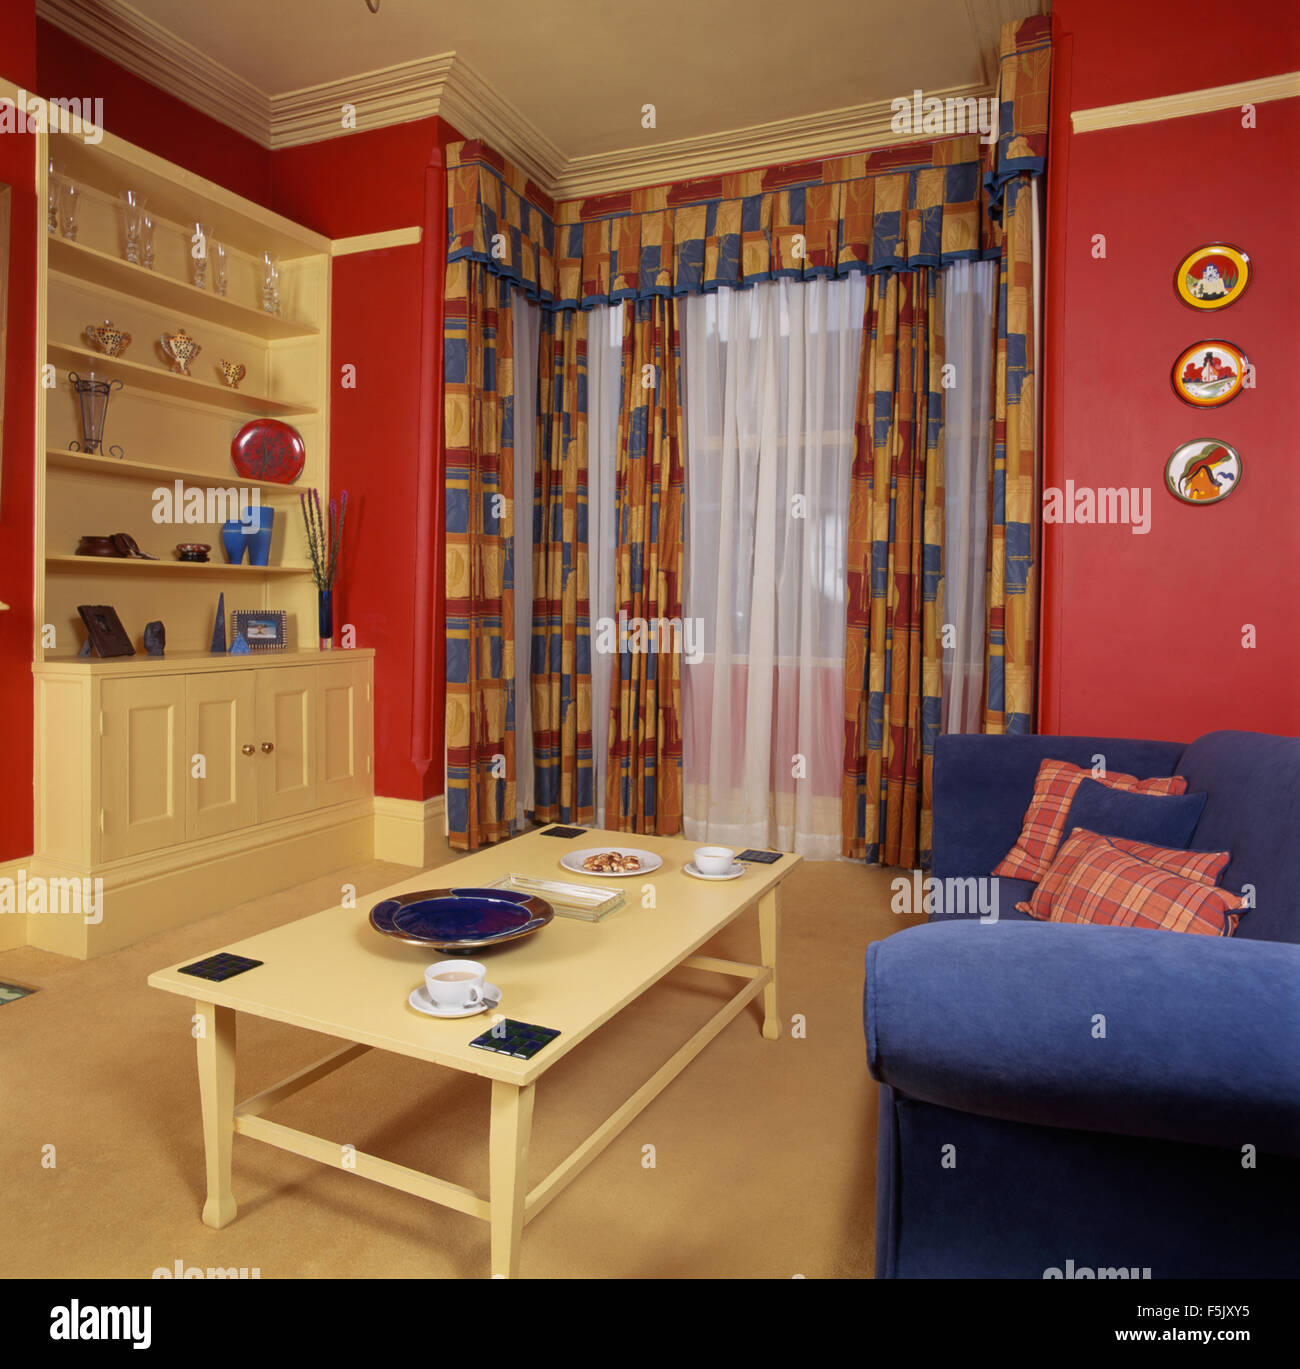 Patterned Curtains With Voile Drapes In A Red Economy Style Nineties Living  Room With A Blue Part 46